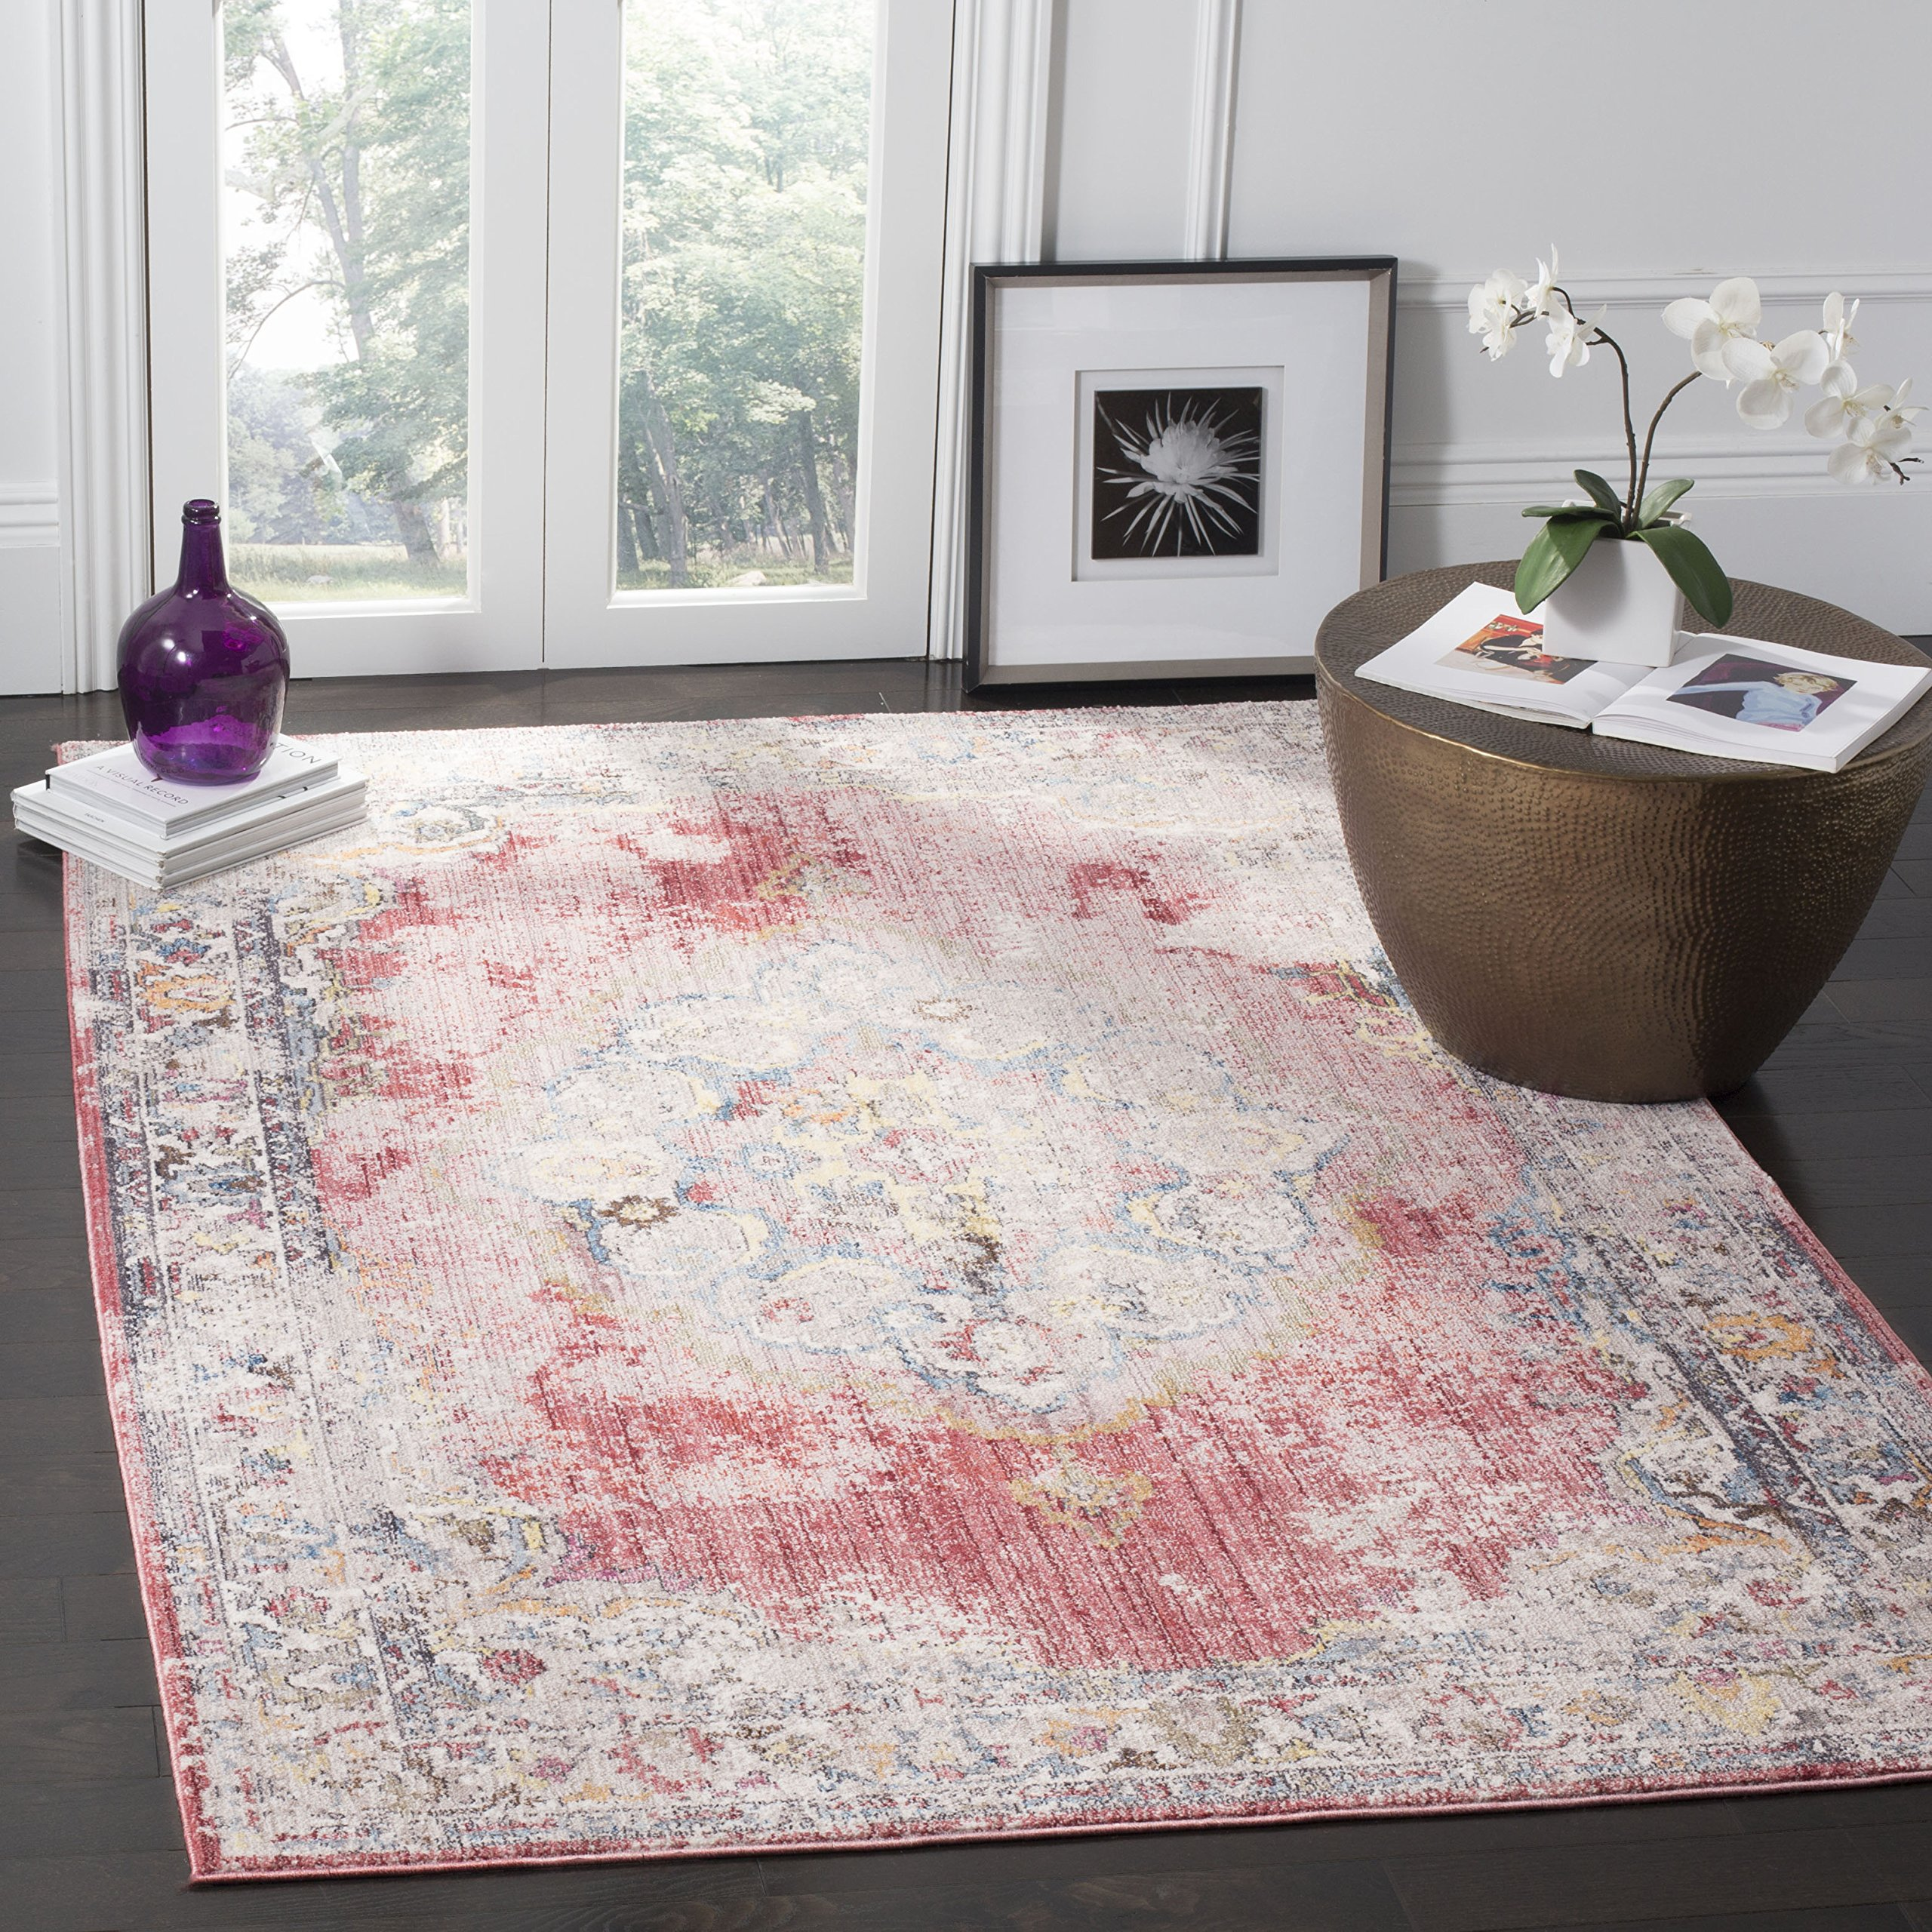 Safavieh Bristol Collection BTL343R Rose and Light Grey Vintage Bohemian Medallion Area Rug (5'1'' x 7'6'') by Safavieh